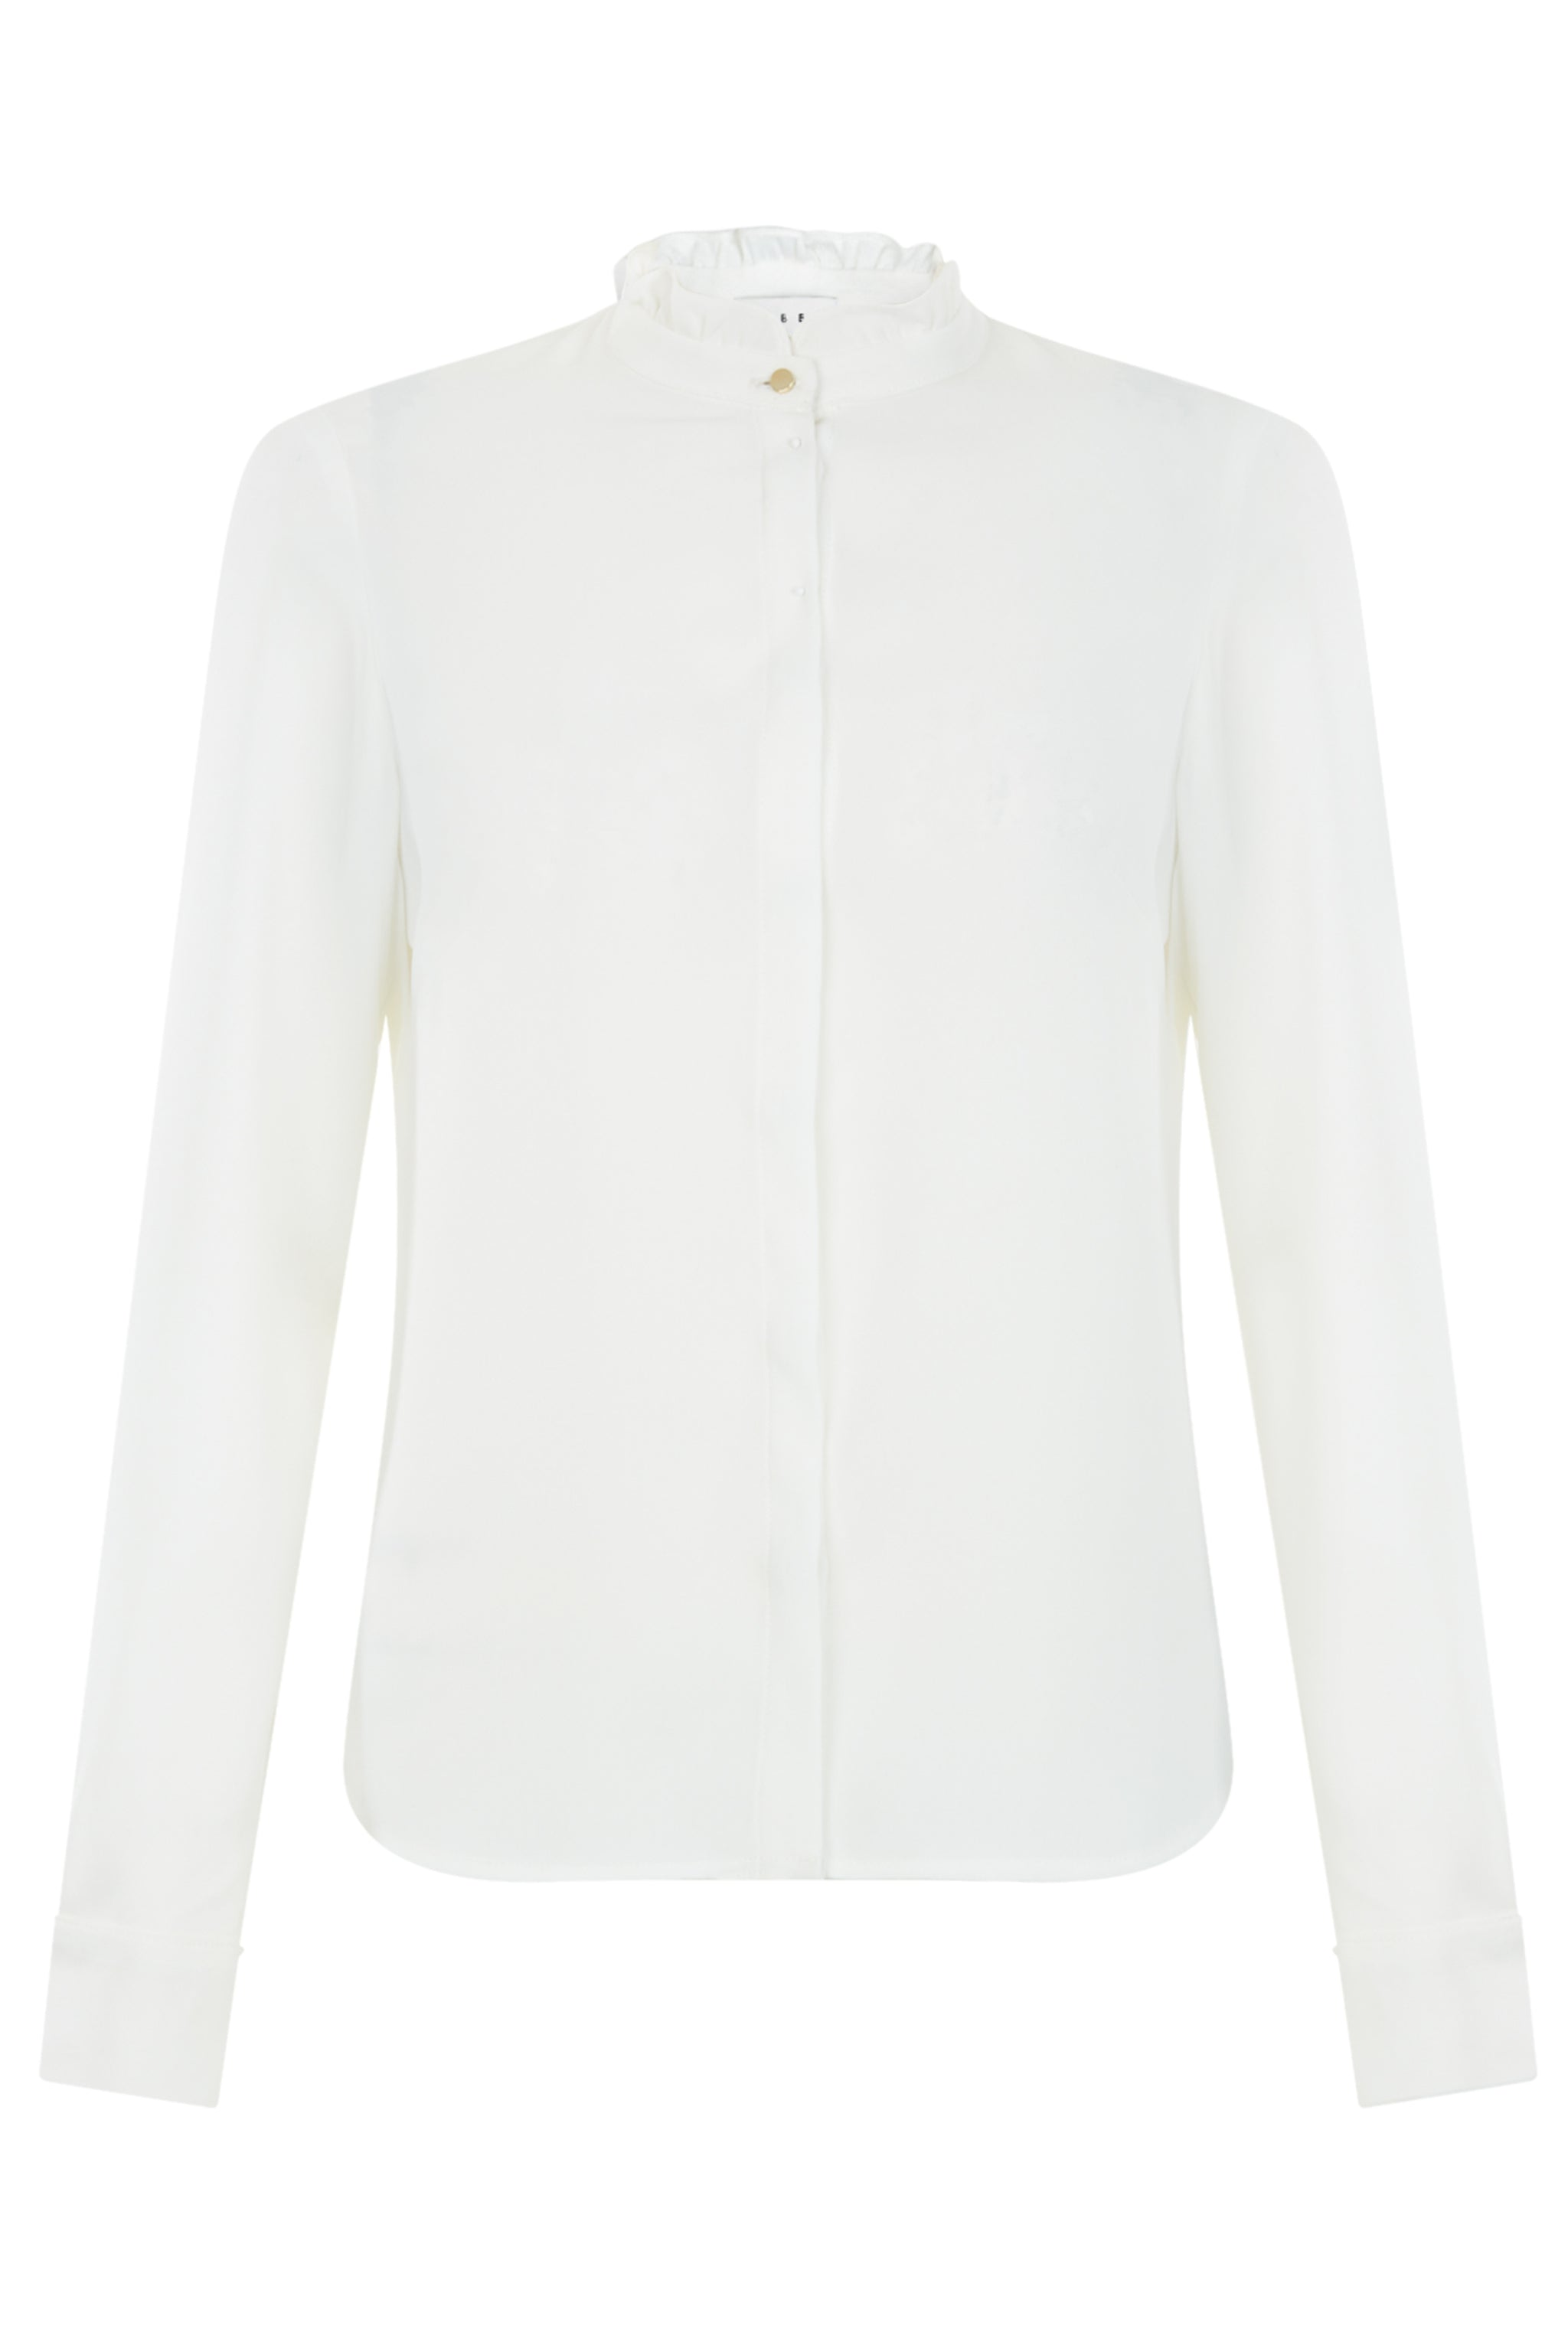 Canterbury White Blouse